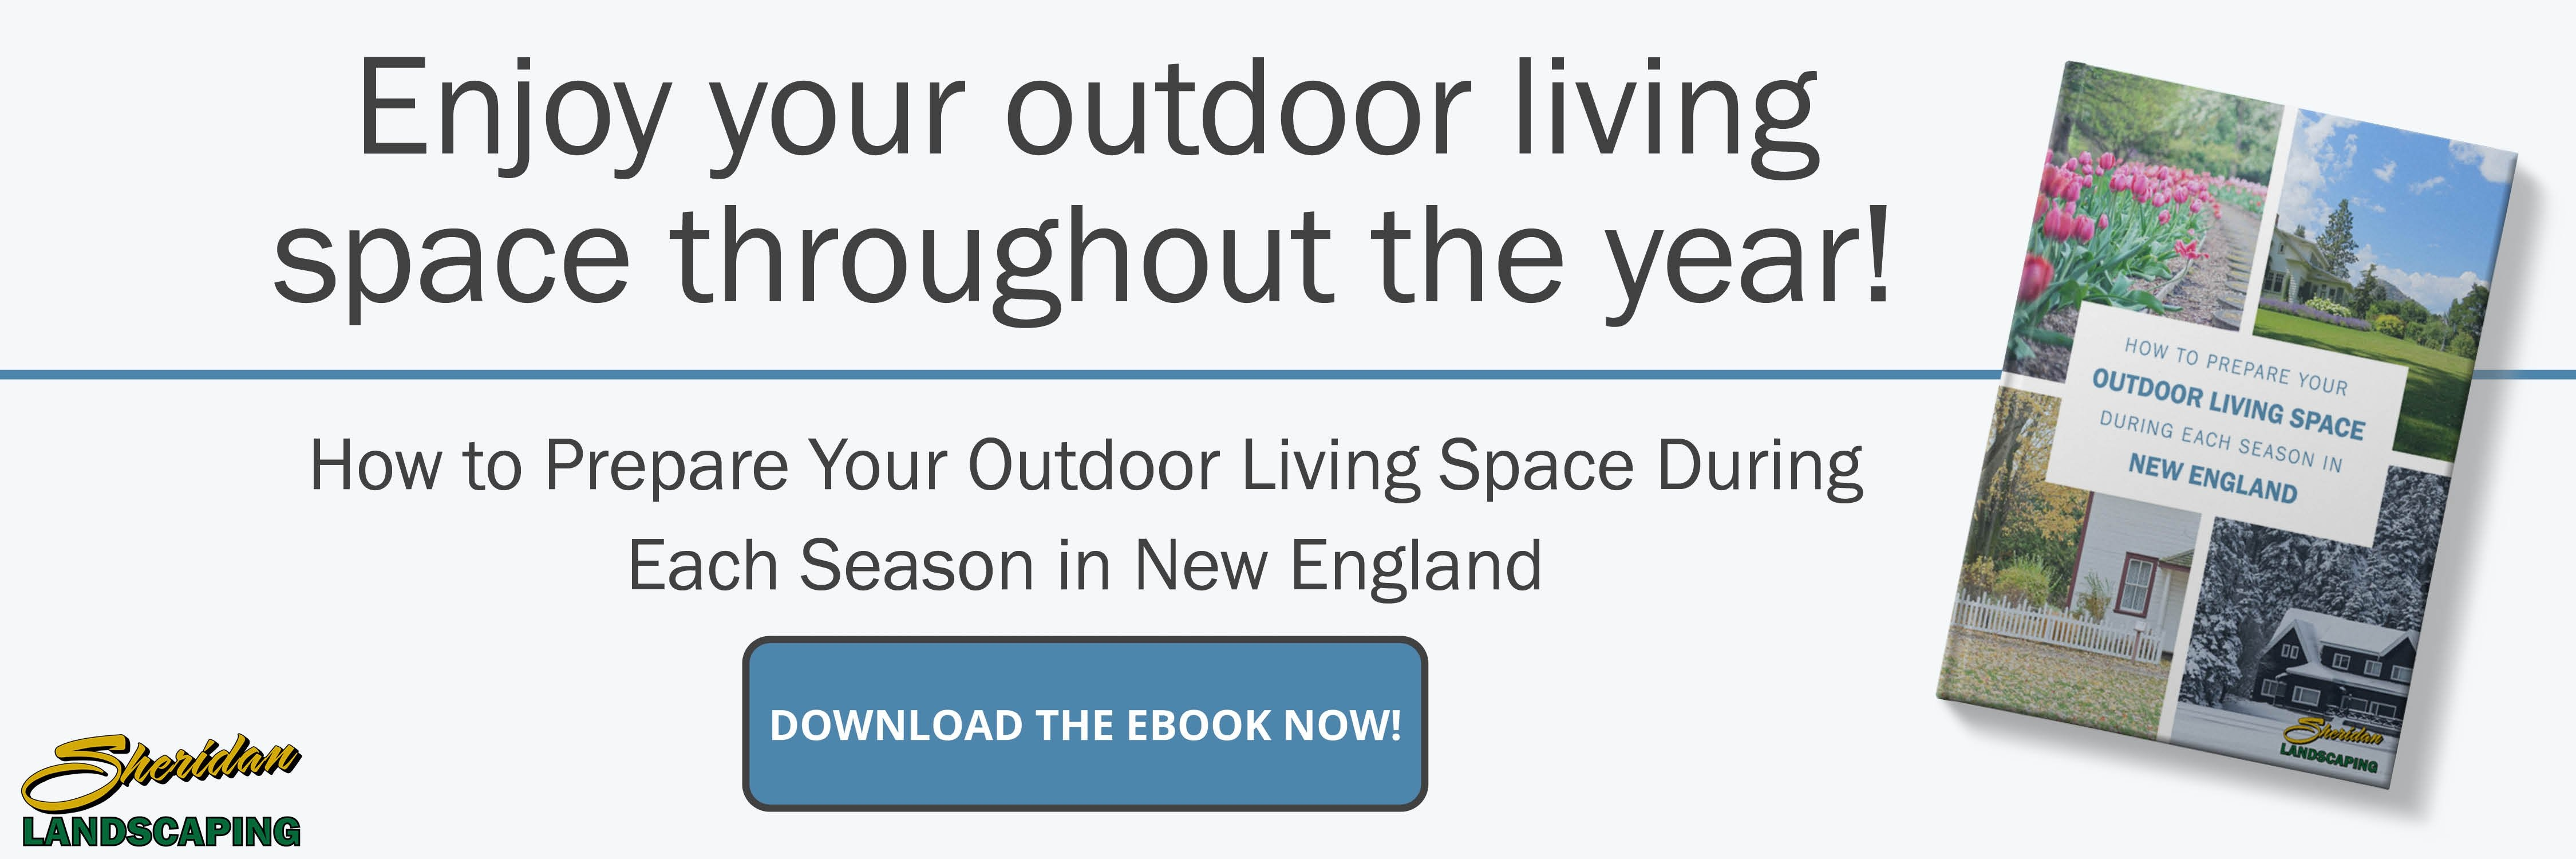 How To Prepare Your Outdoor Living Space During Each Season in New England